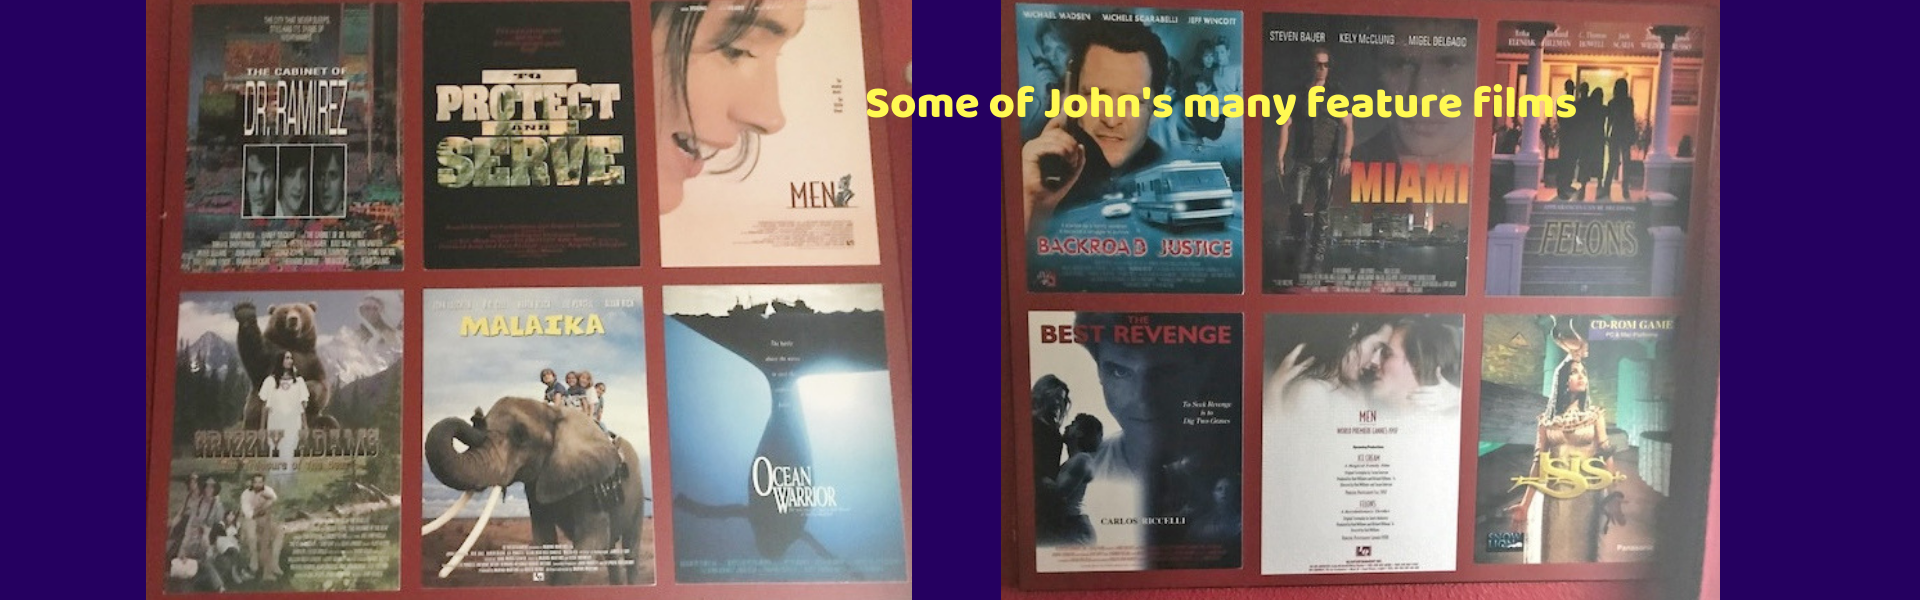 Some of John's many feature films (2)